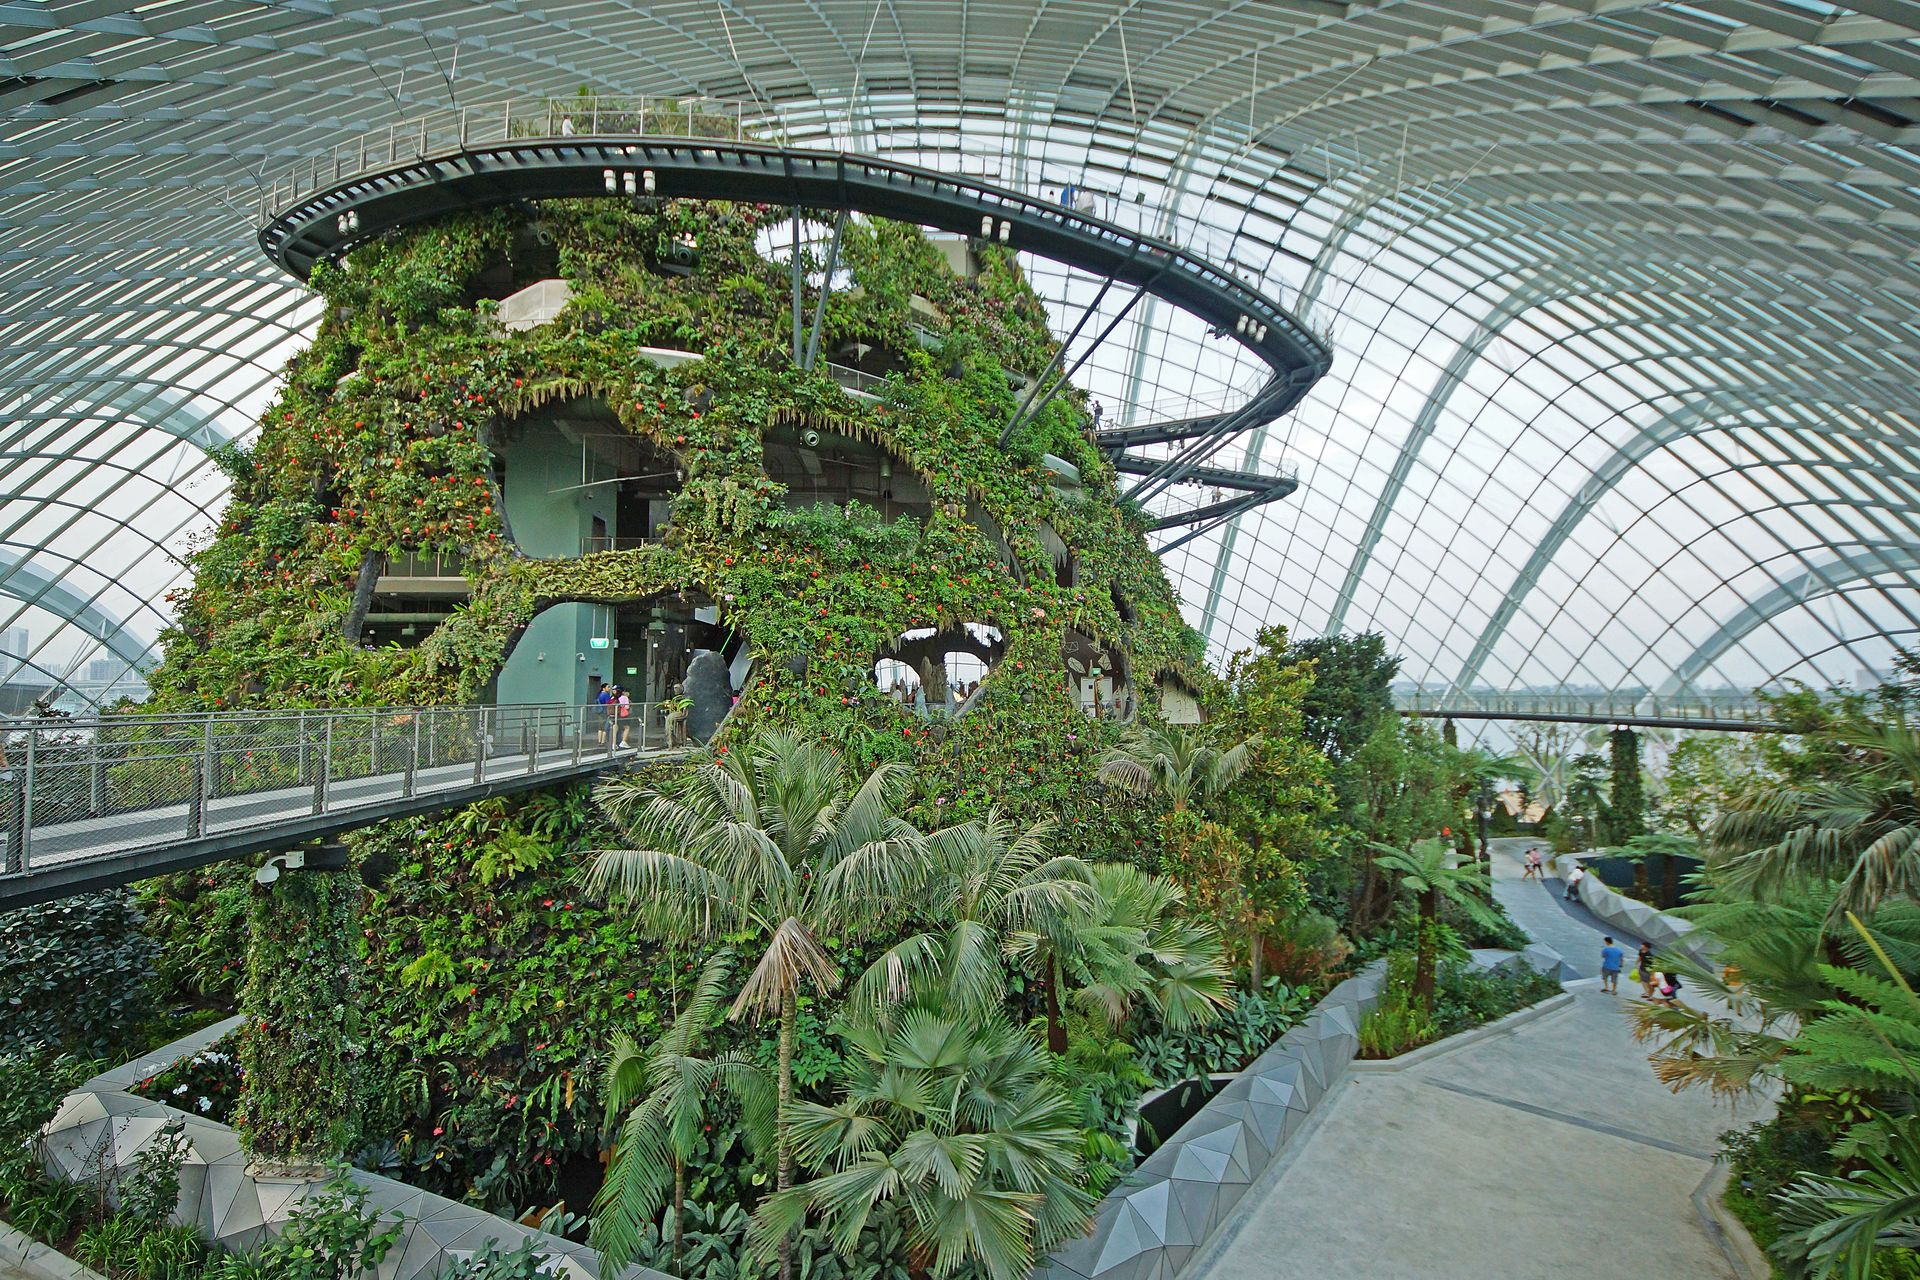 17390c4c3f95c5d37dbbe2b1318e3efa - How Long To See Gardens By The Bay